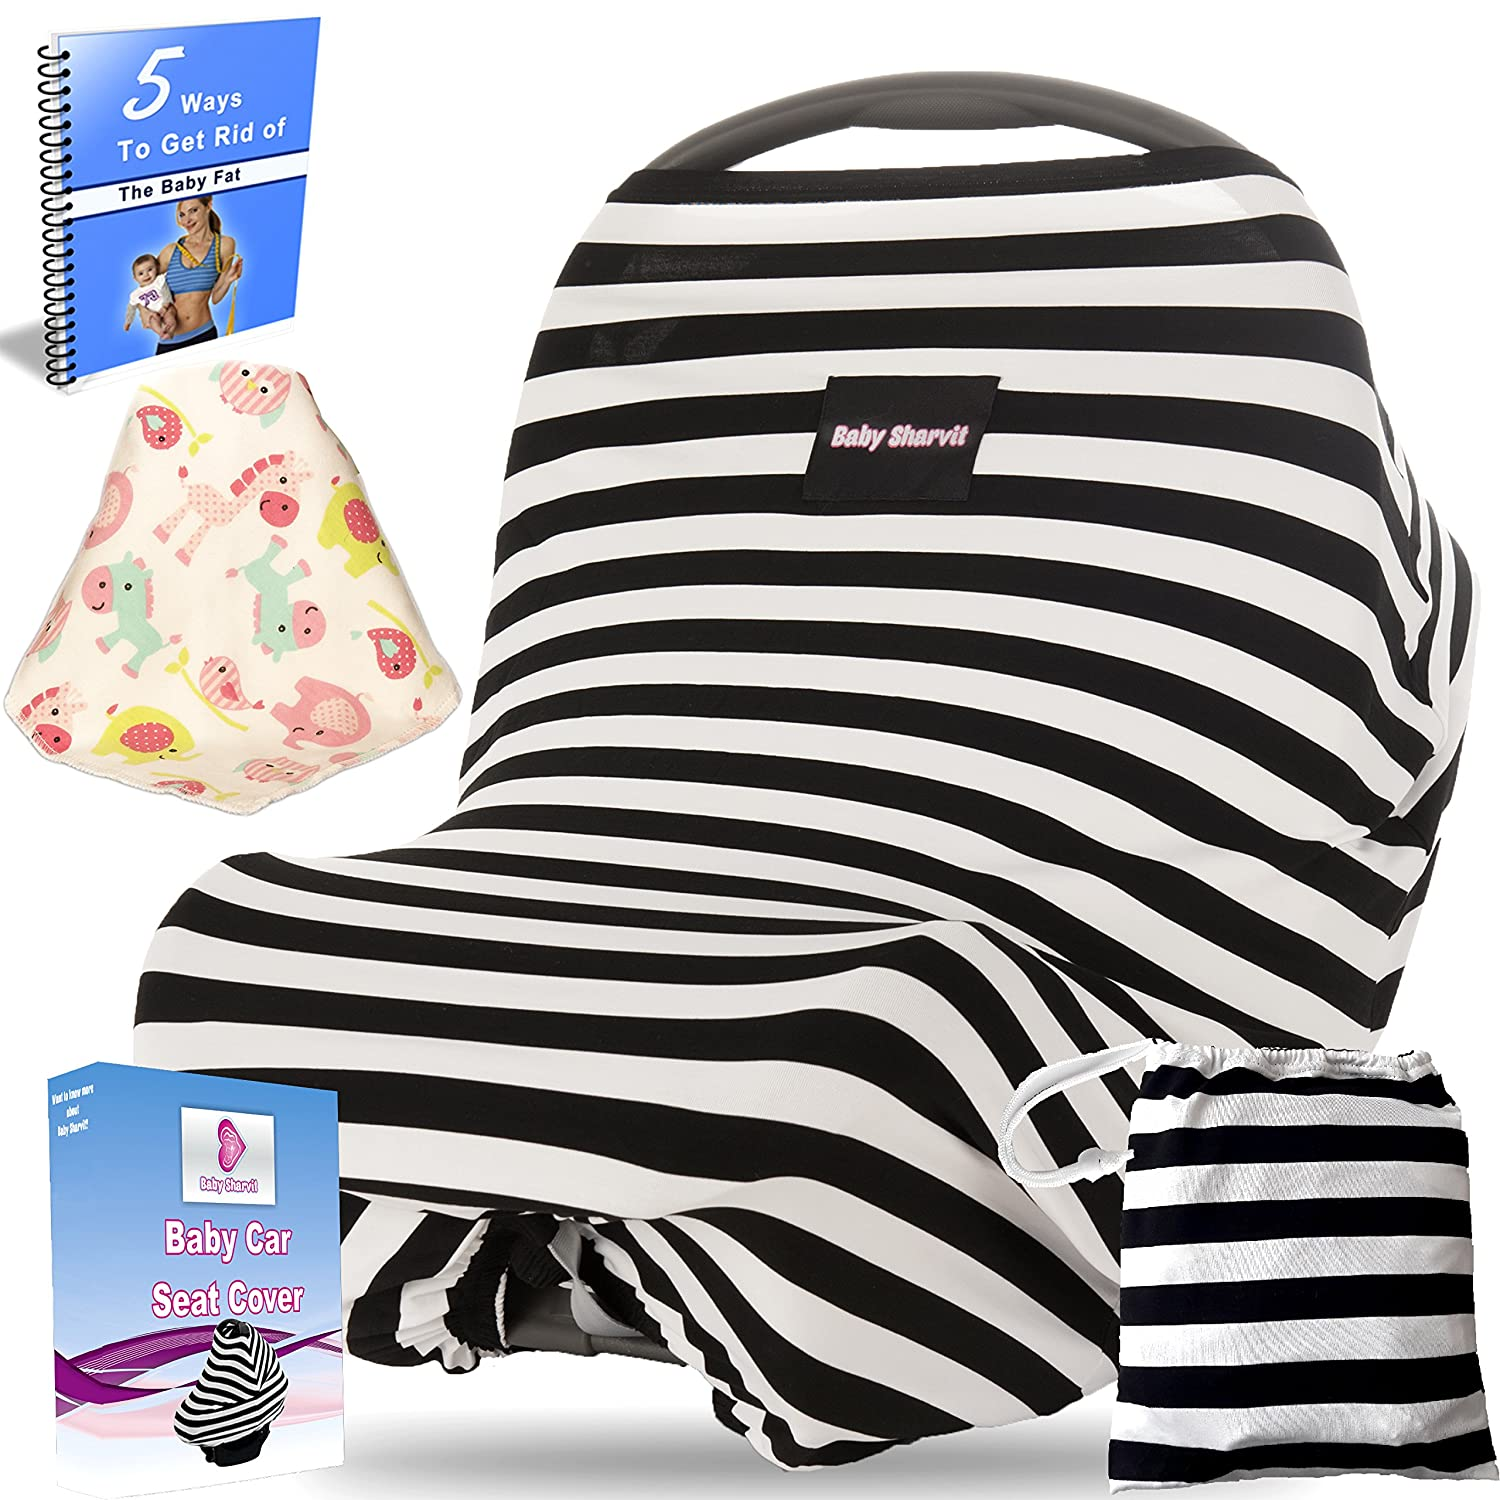 Amazon.com Baby Car Seat Cover Canopy Nursing Cover\ Breastfeeding Cover Shopping Cart Cover \ high Chair Cover - 4 IN 1 - Unisex - Black and White ... & Amazon.com: Baby Car Seat Cover Canopy Nursing Cover ...